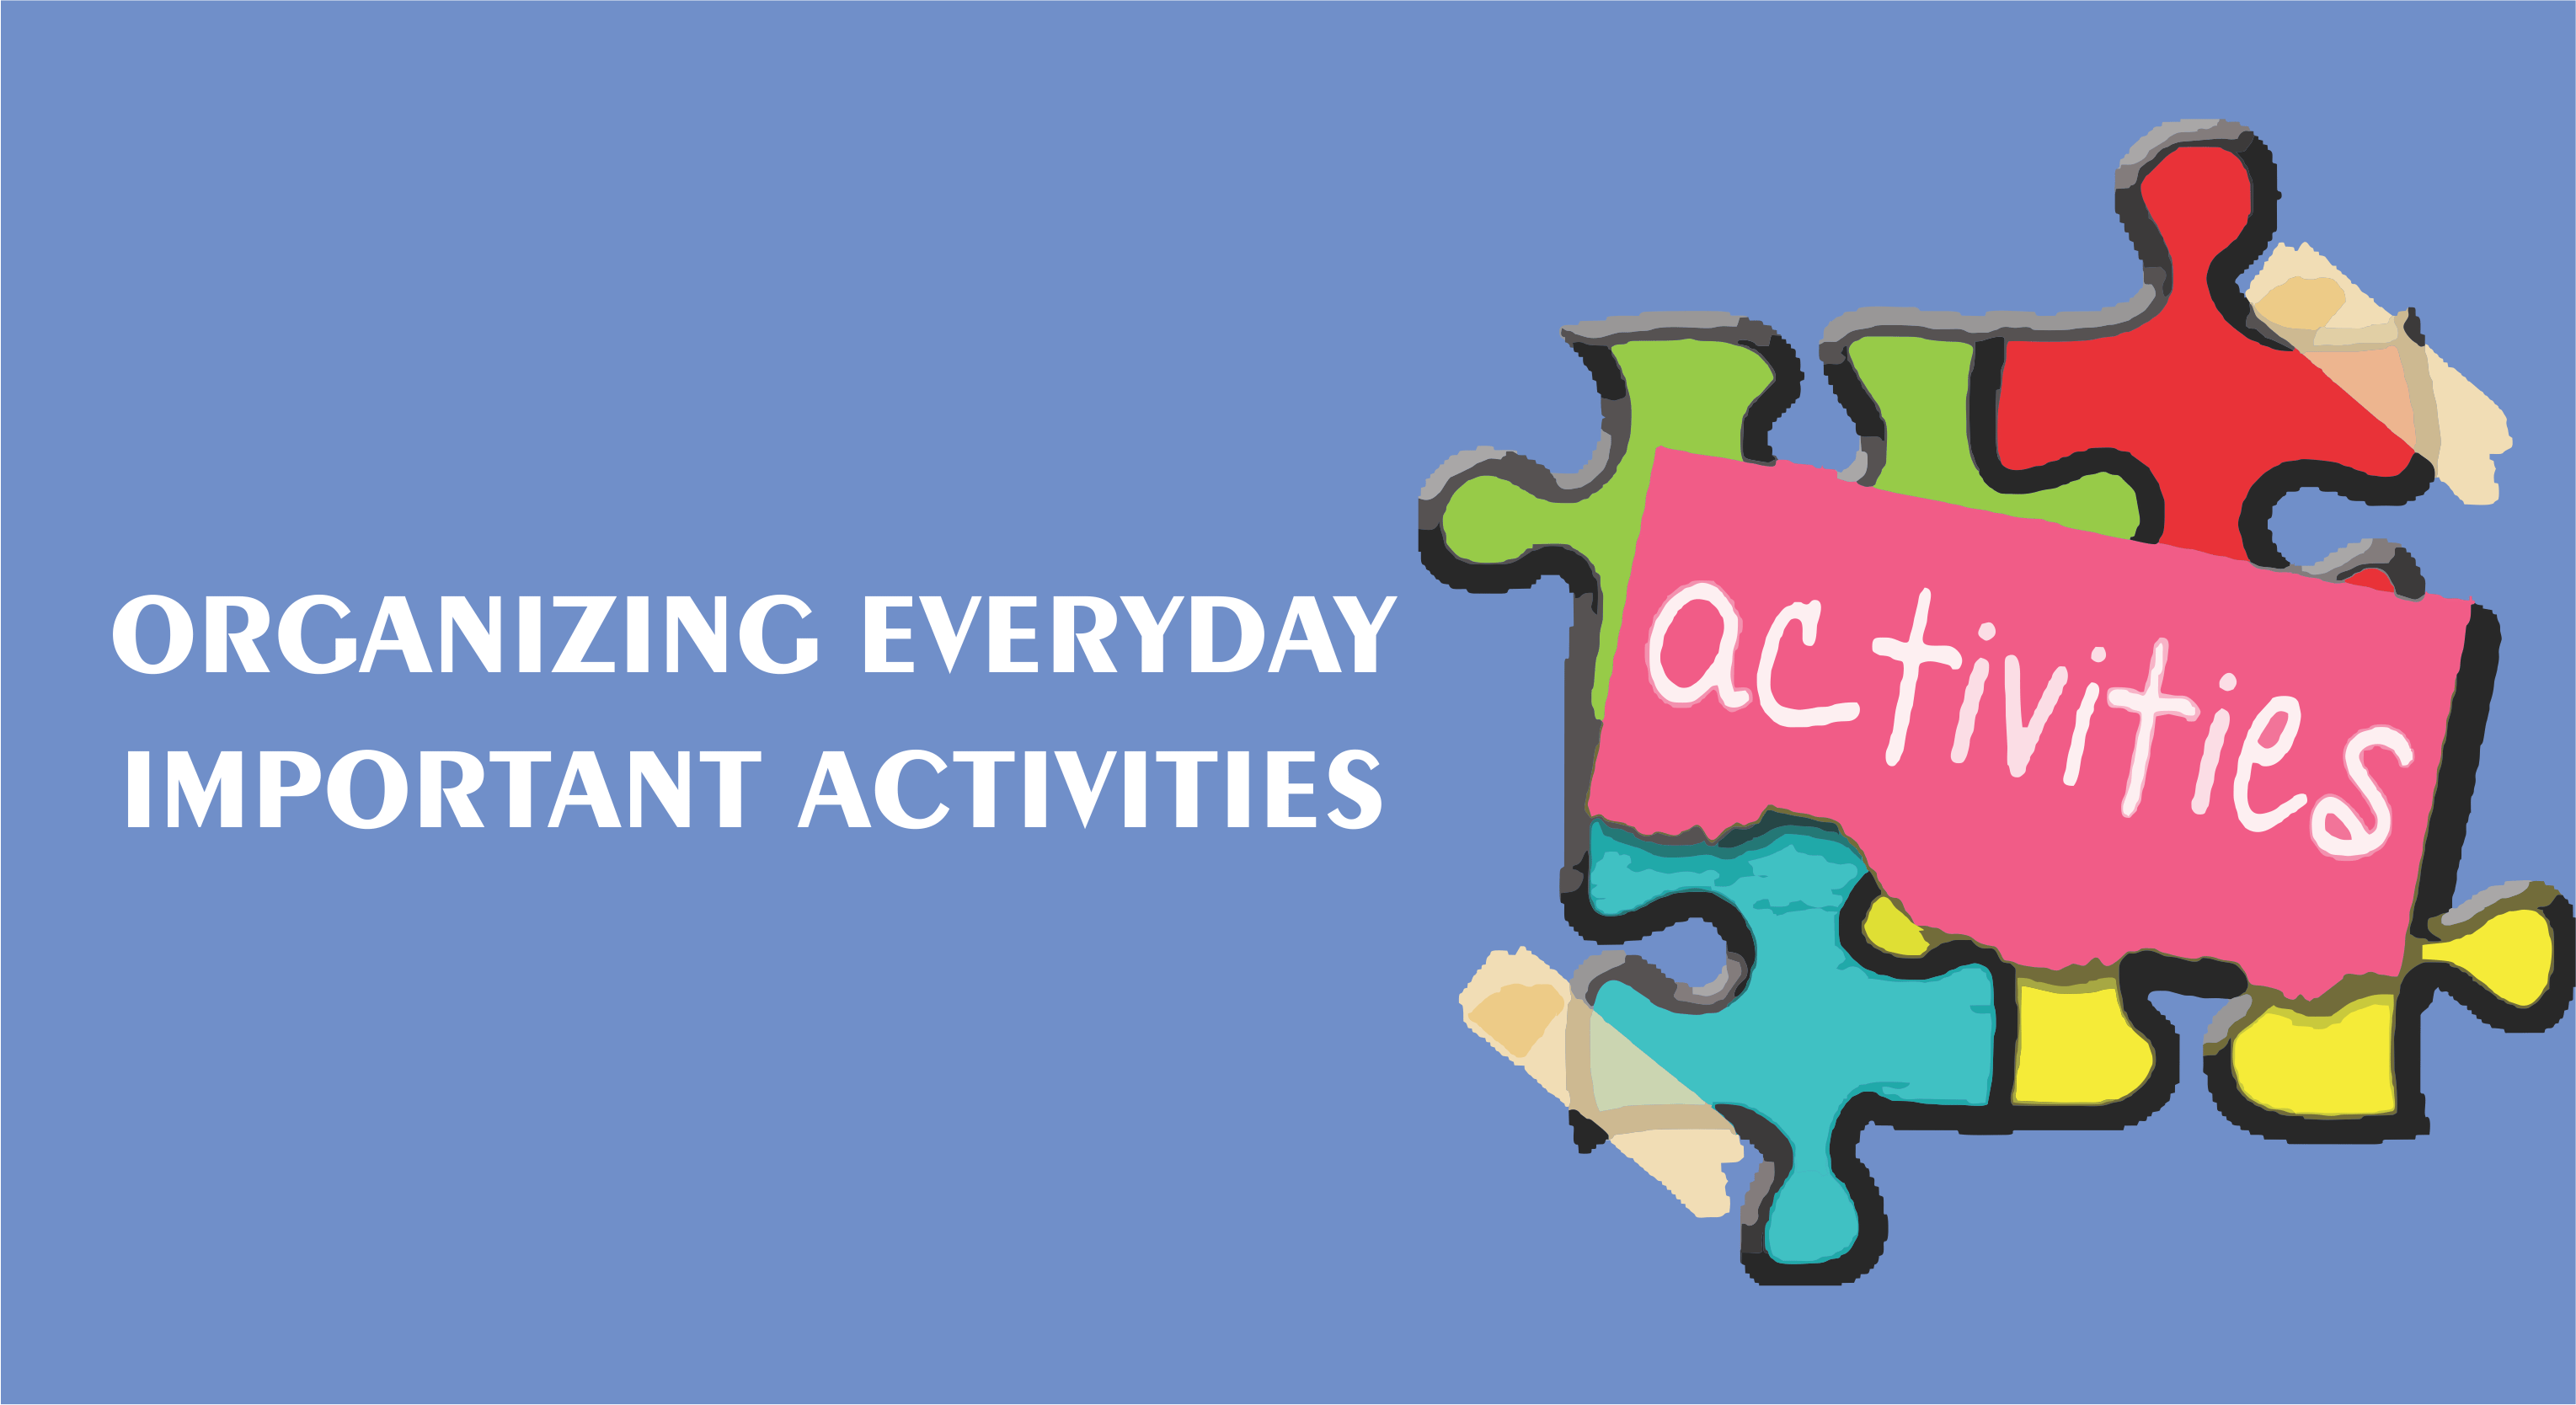 Organizing Everyday Important Activities